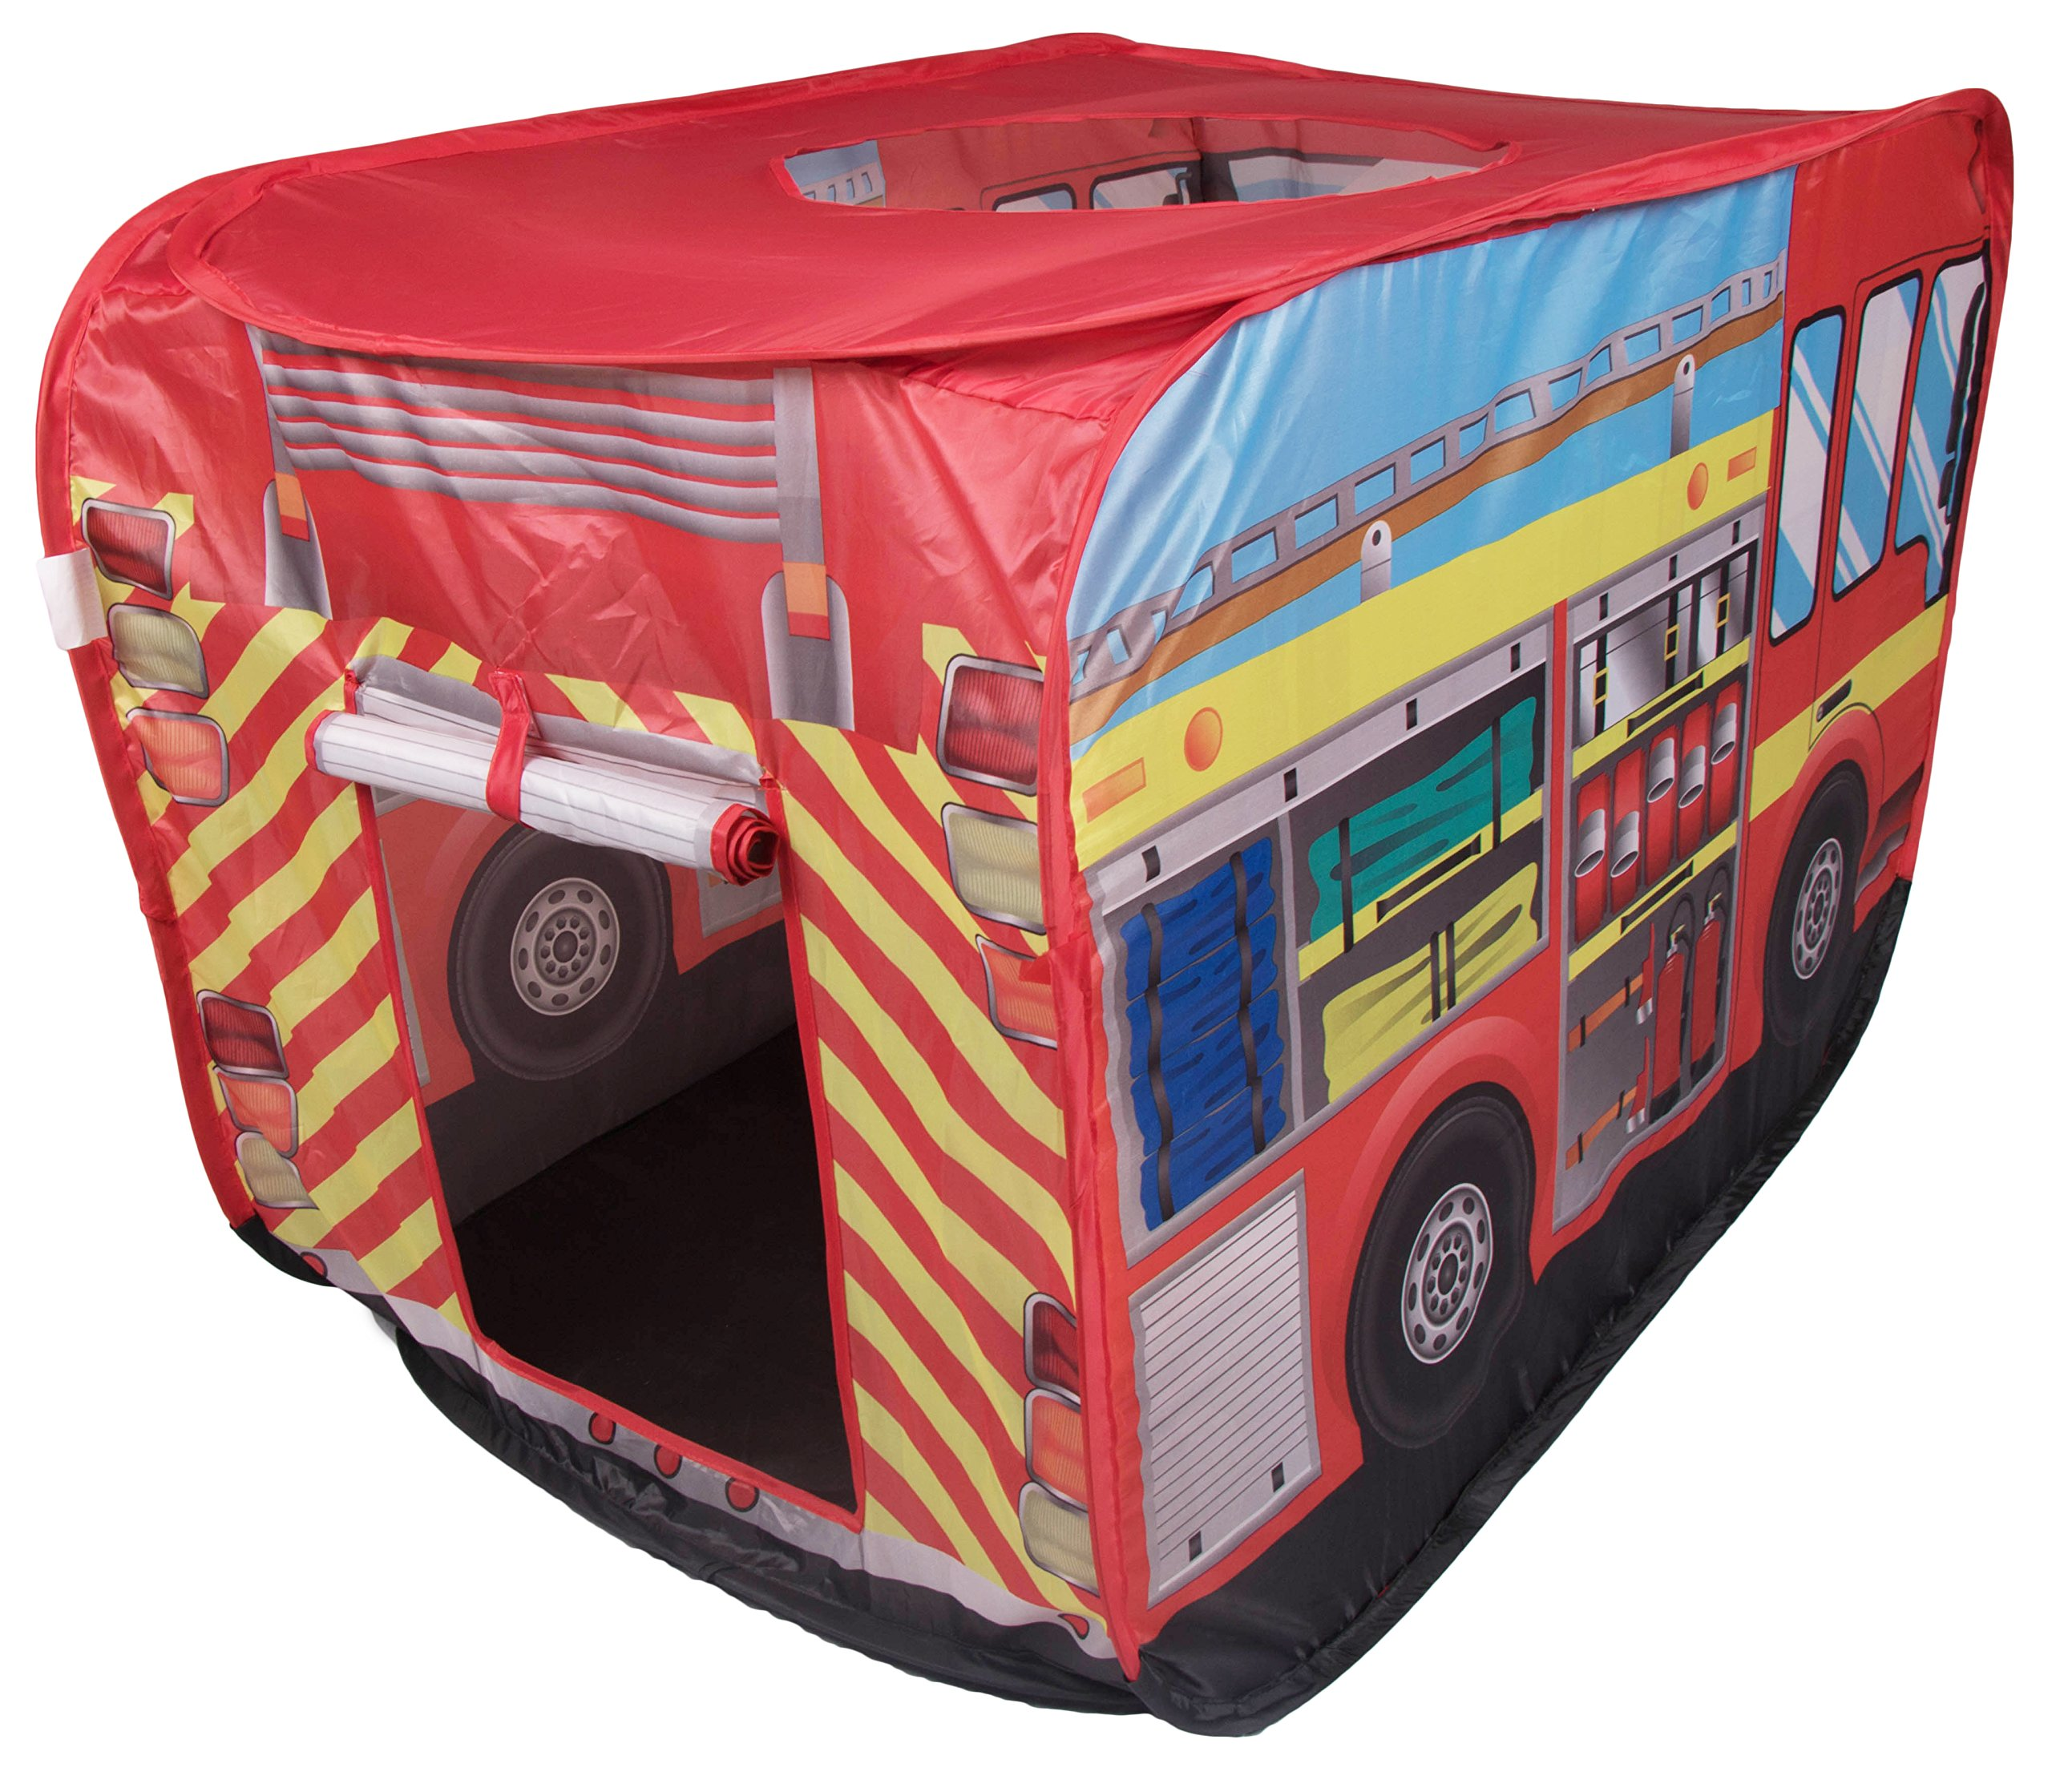 Fire Truck Indoor/Outdoor Play Tent by Clever Creations   Fire Truck Design Perfect for Fireman Themed Room Hideout for Kids   Simple, Fast Set up and Takedown   No Tools Needed   Creative Play Tent